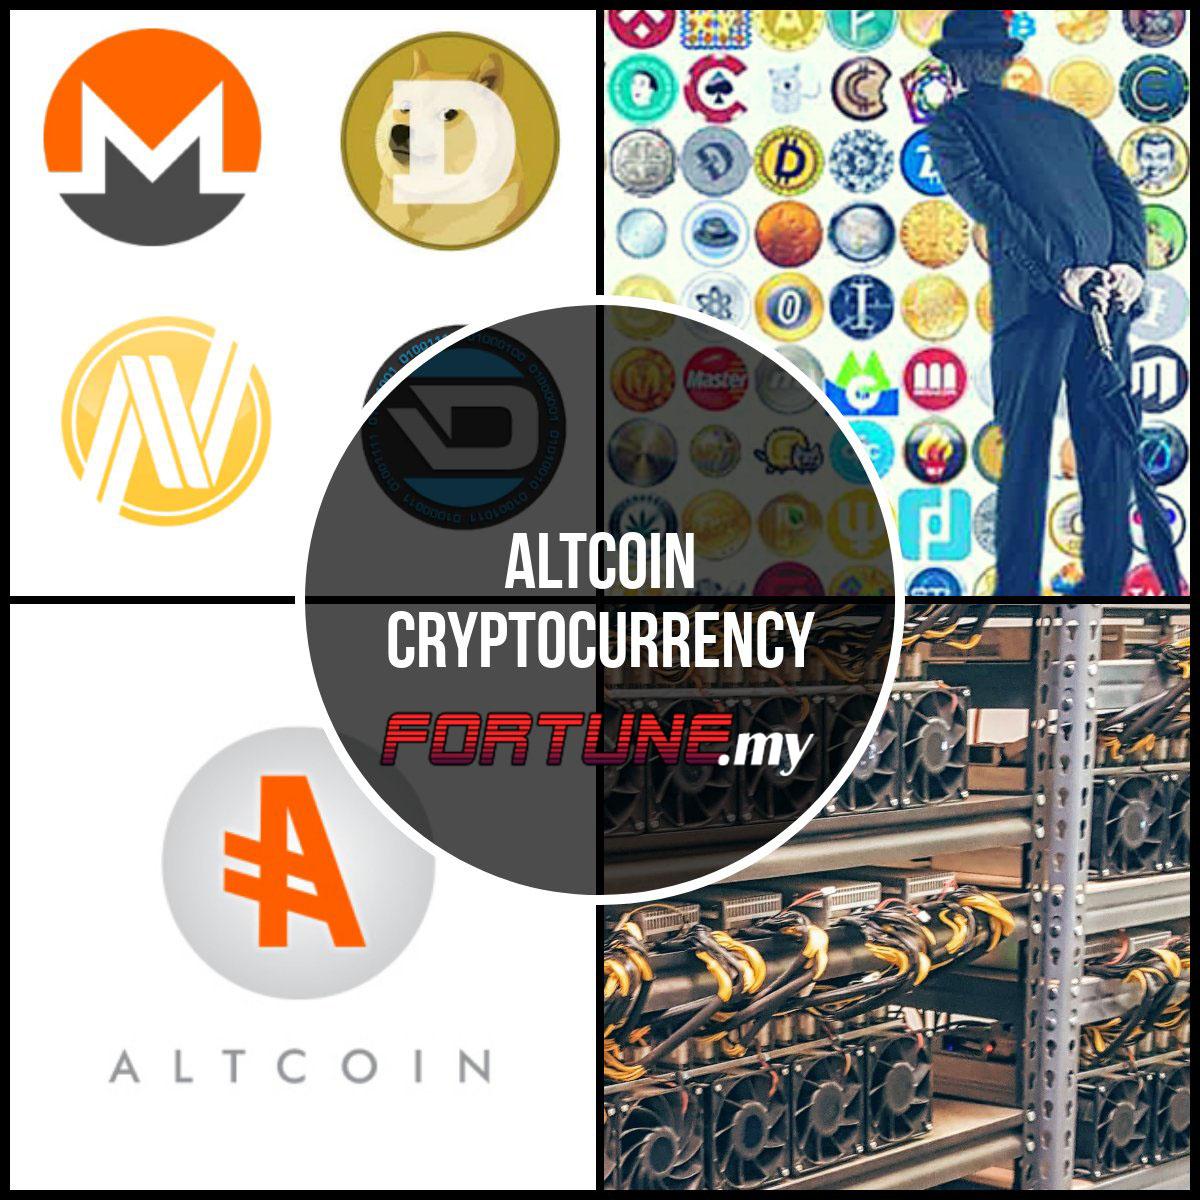 Altcoin Cryptocurrency